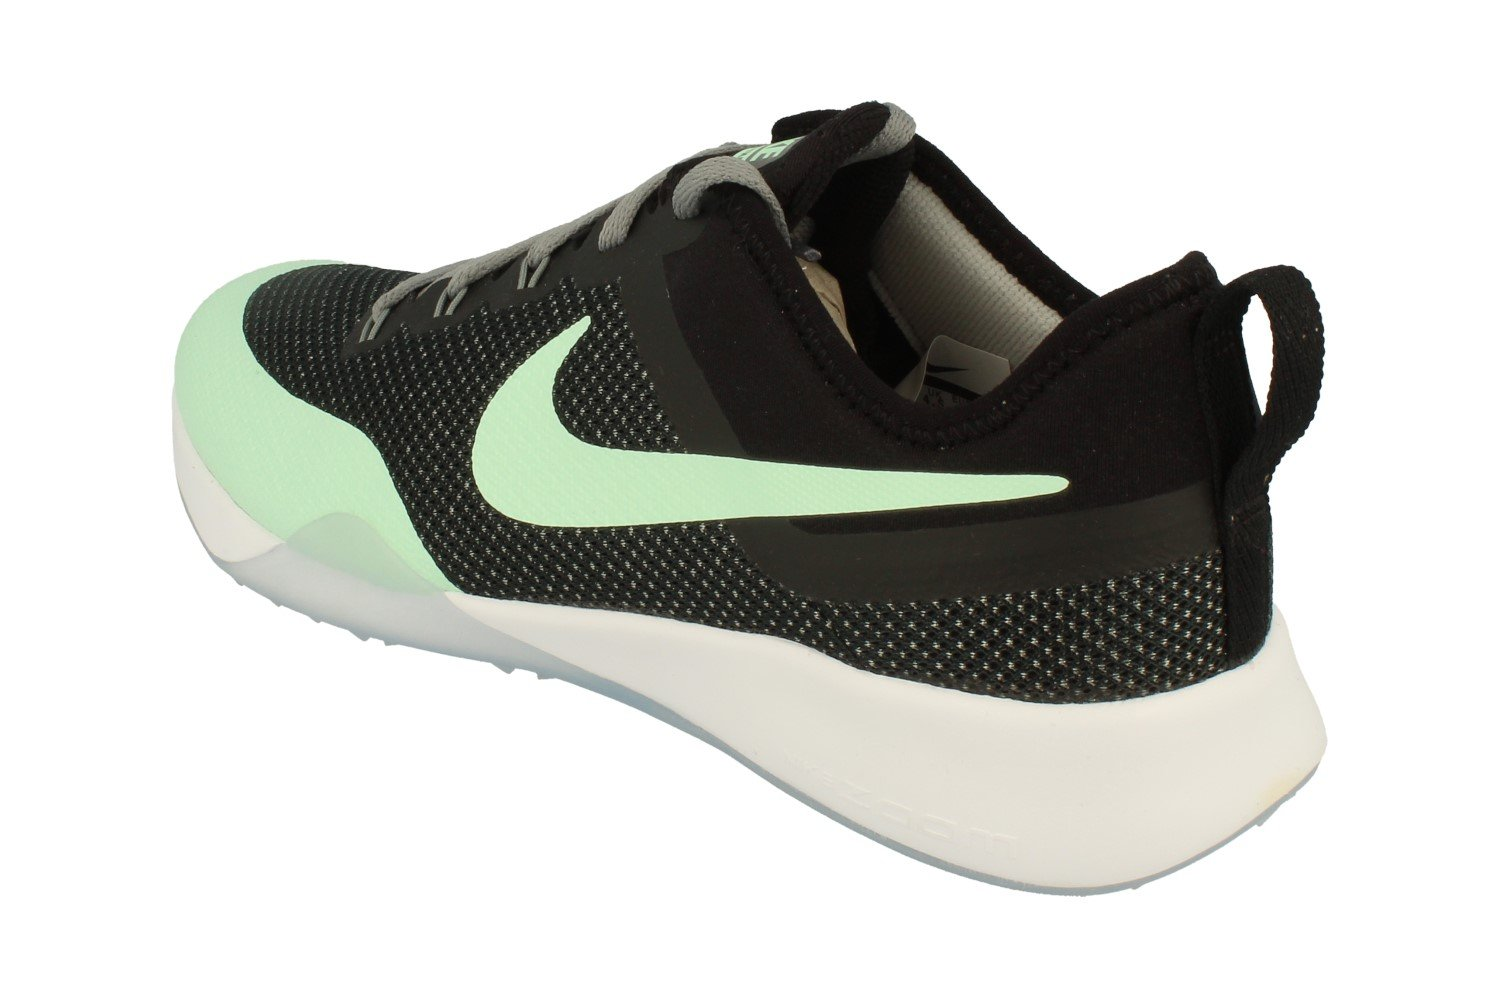 511356c0eed8 ... NIKE Women s Air Zoom Dynamic Dynamic Dynamic Training Shoe B073N9HQ3F  7 B(M) US ...